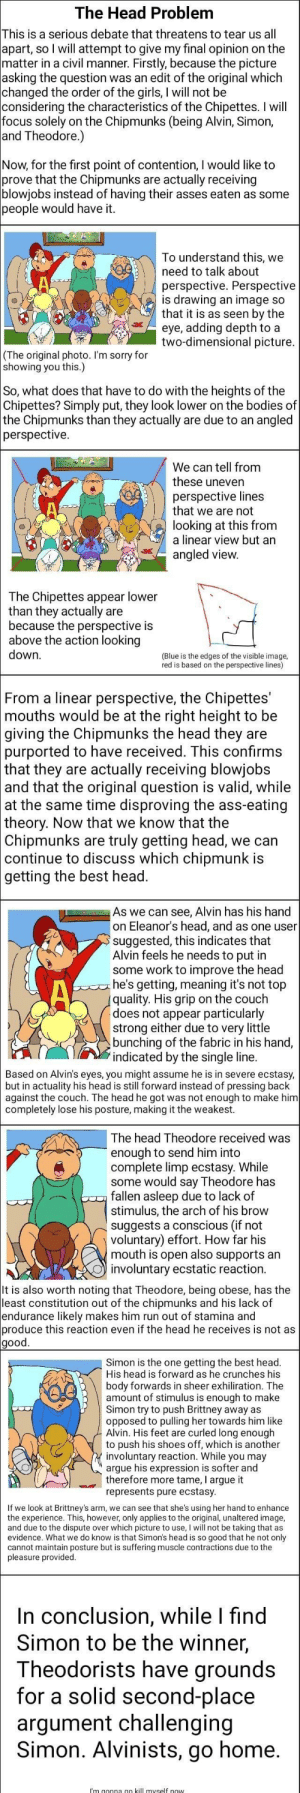 an interesting debate: The Head Problem  This is a serious debate that threatens to tear us all  apart, so I will attempt to give my final opinion on the  matter in a civil manner. Firstly, because the picture  asking the question was an edit of the original which  changed the order of the girls, I will not be  considering the characteristics of the Chipettes. I will  focus solely on the Chipmunks (being Alvin, Simon,  and Theodore.)  Now, for the first point of contention, I would like to  prove that the Chipmunks  blowjobs instead of having their asses eaten as some  people would have it.  actually receiving  are  To understand this, we  need to talk about  perspective. Perspective  is drawing an image so  that it is as seen by the  eye, adding depth to a  two-dimensional picture.  (The original photo. I'm sorry for  showing you this.)  So, what does that have to do with the heights of the  Chipettes? Simply put, they look lower on the bodies of  the Chipmunks than they actually are due to an angled  perspective  We can tell from  these uneven  perspective lines  that we are not  looking at this from  a linear view but an  angled view.  The Chipettes appear lower  than they actually are  because the perspective is  above the action looking  down  (Blue is the edges of the visible image,  red is based on the perspective lines)  |From a linear perspective, the Chipettes'  mouths would be at the right height to be  |giving the Chipmunks the head they are  purported to have received. This confirms  | that they are actually receiving blowjobs  and that the original question is valid, while  at the same time disproving the ass-eating  theory. Now that we know that the  Chipmunks are  continue to discuss which chipmunk is  getting the best head.  truly getting head, we can  As we can see, Alvin has his hand  on Eleanor's head, and as one user  suggested, this indicates that  Alvin feels he needs to put in  some work to improve the head  he's getting, meaning it's not top